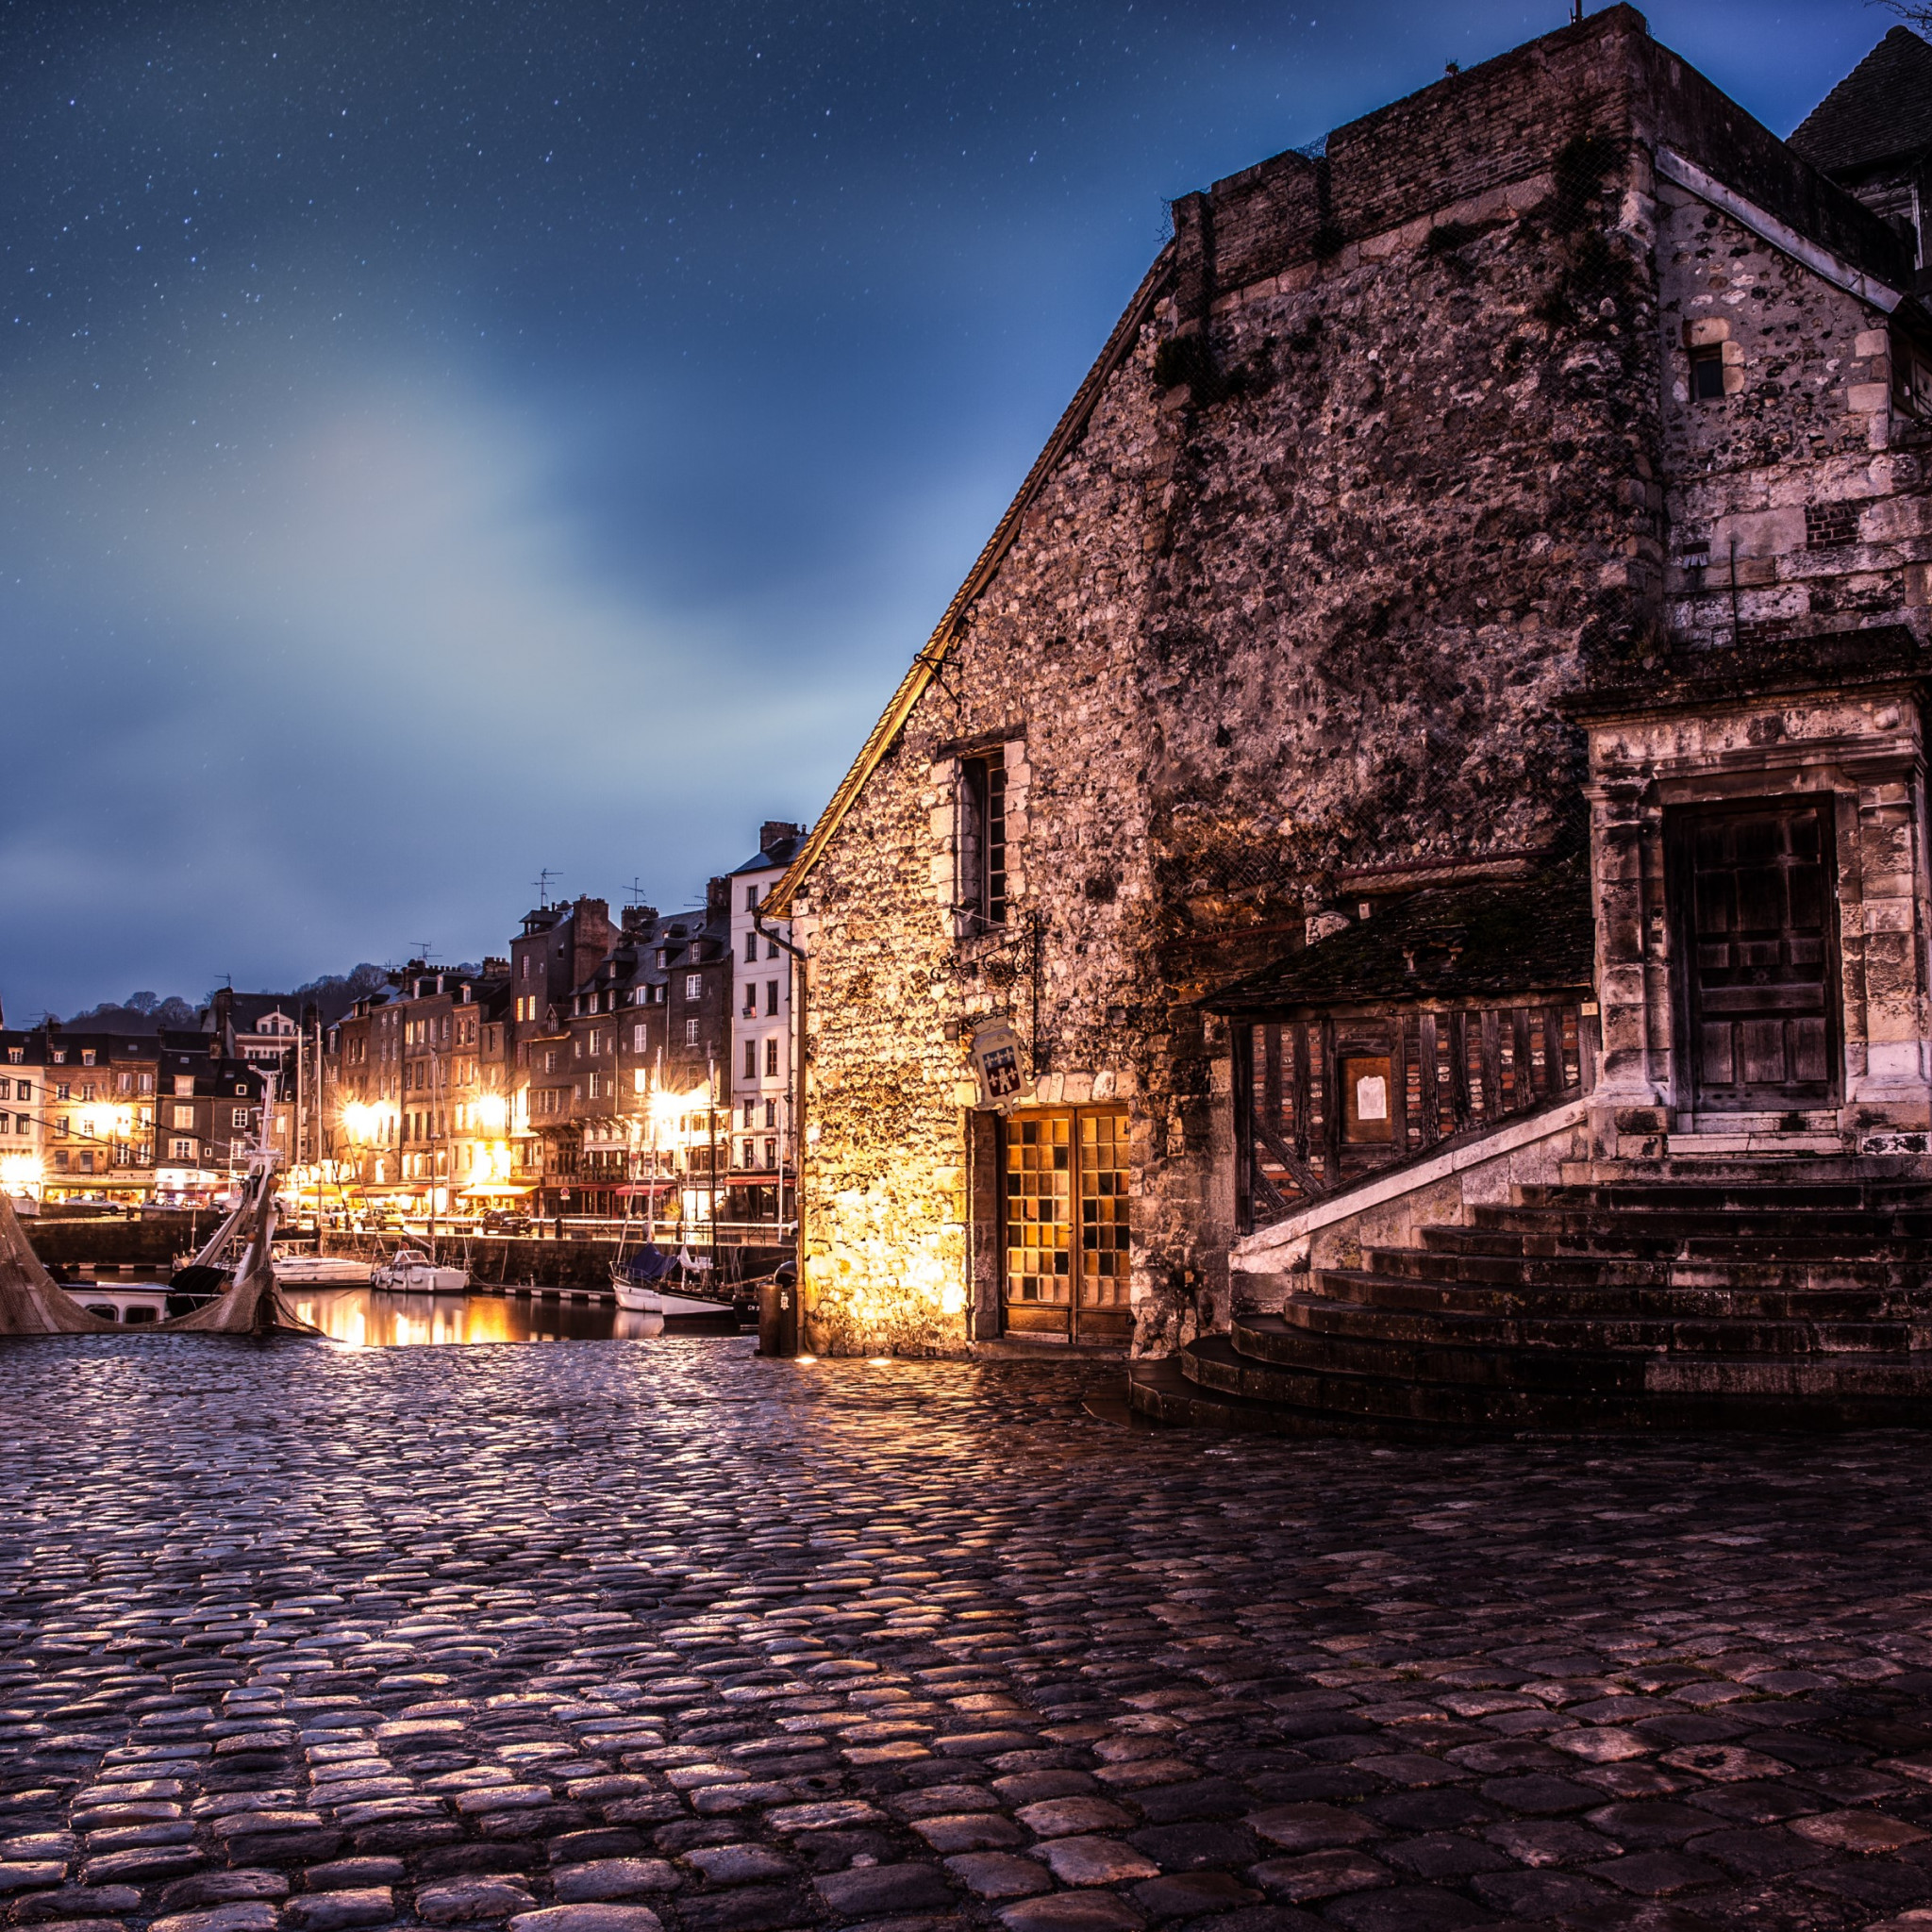 Night in Honfleur, France wallpaper 2048x2048